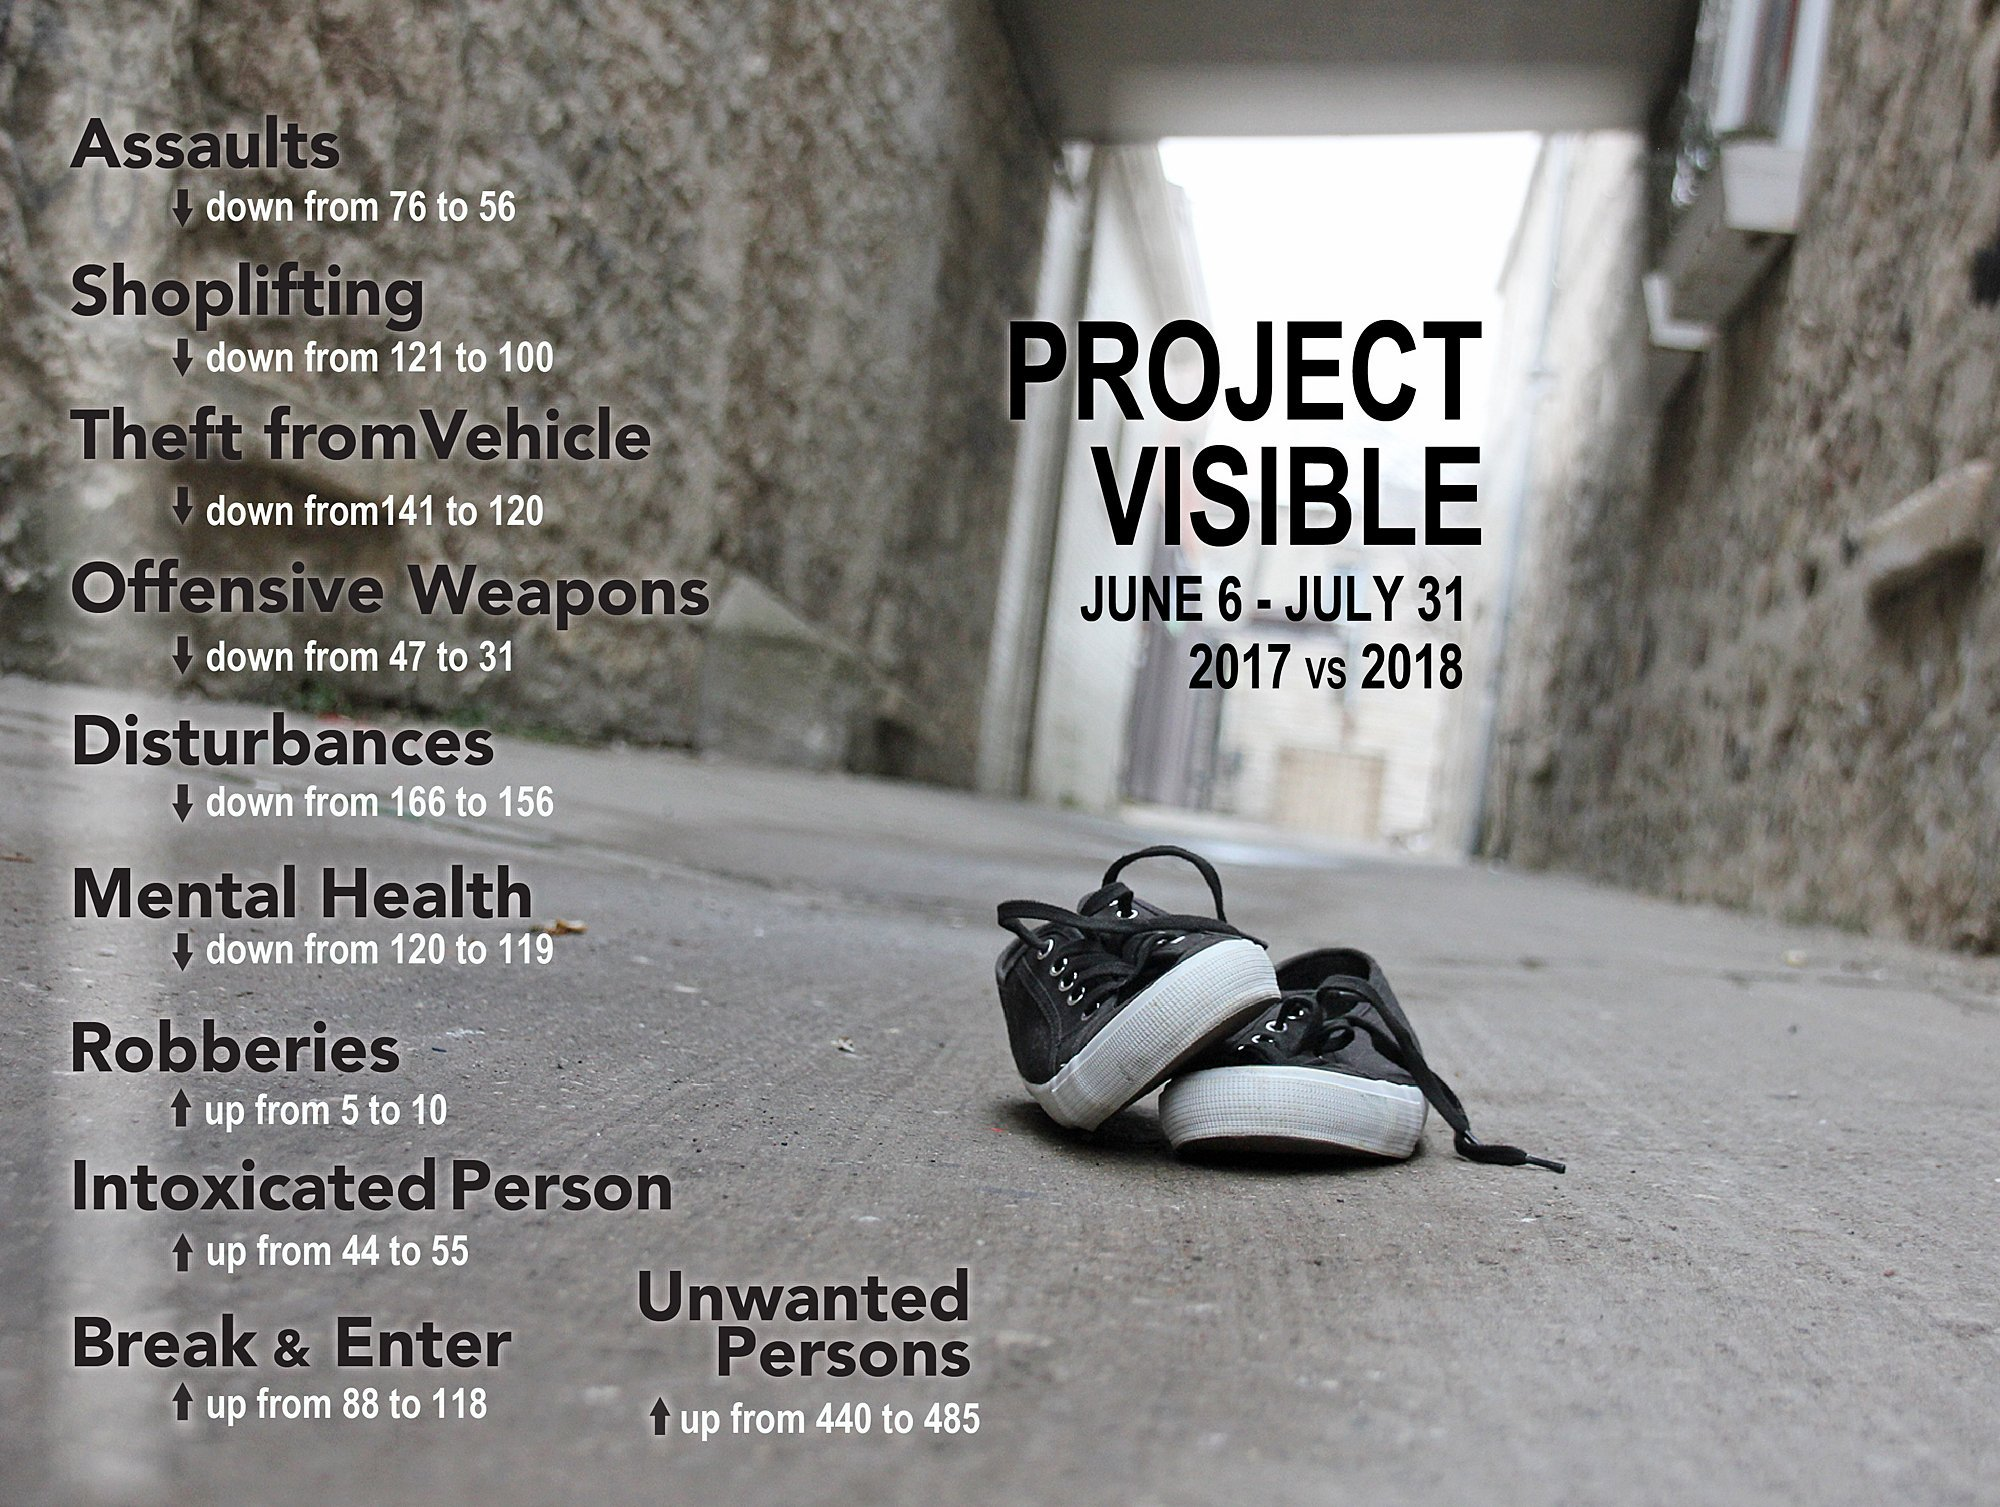 Project Visible